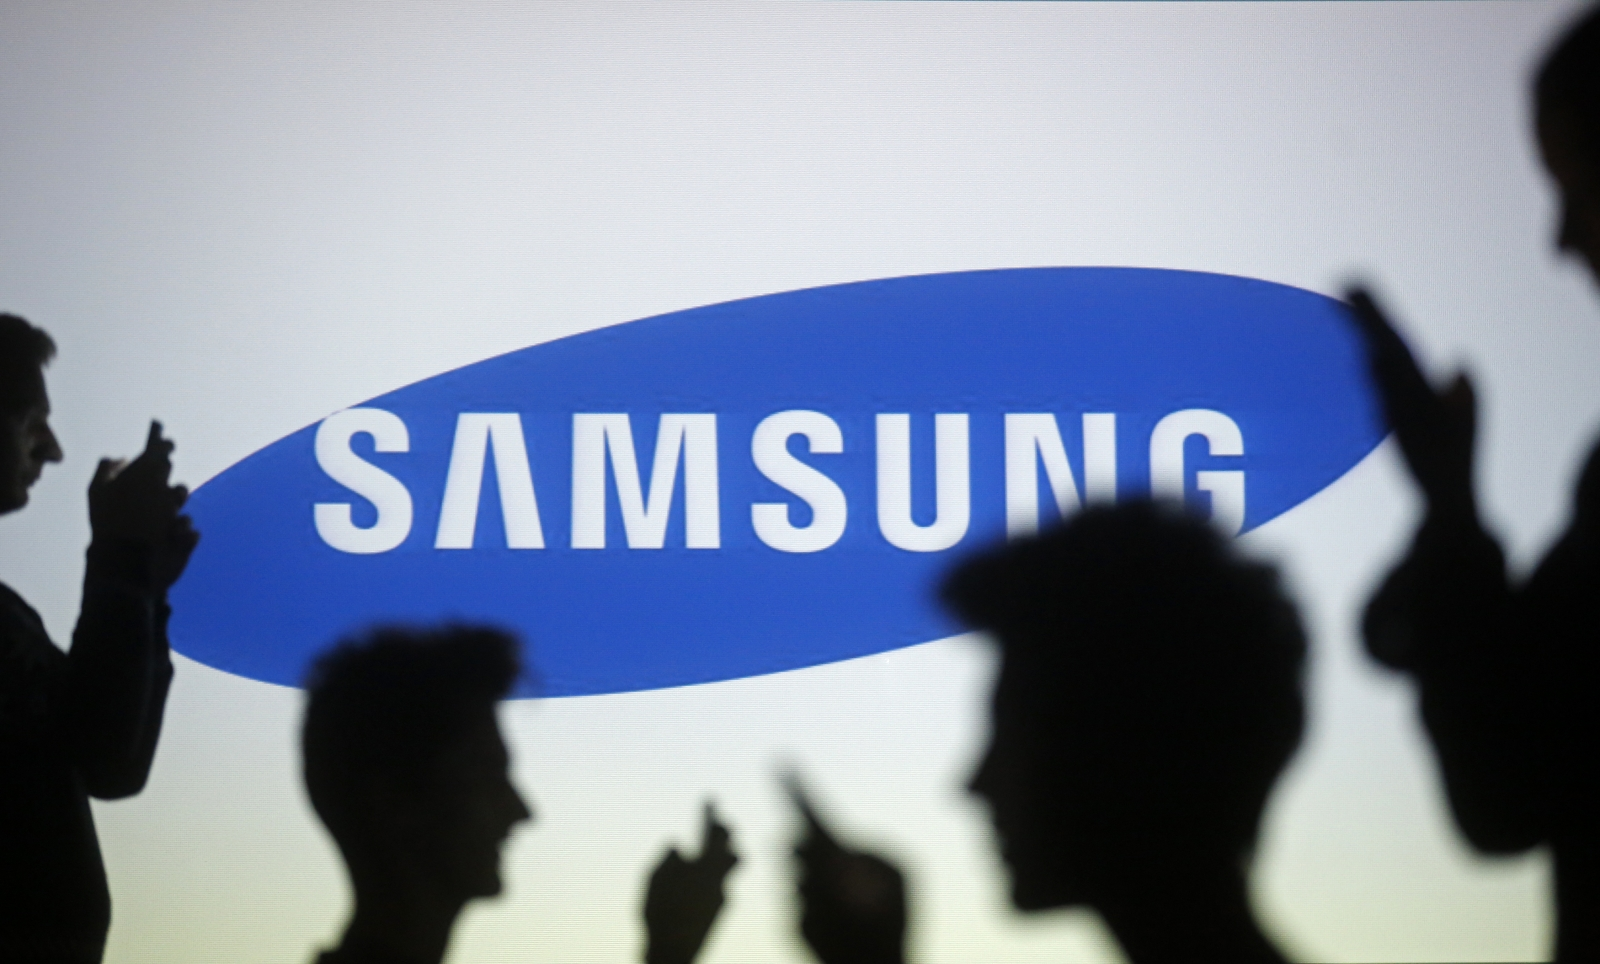 Galaxy S6 will use Samsung's own Exynos 7 64-bit chip